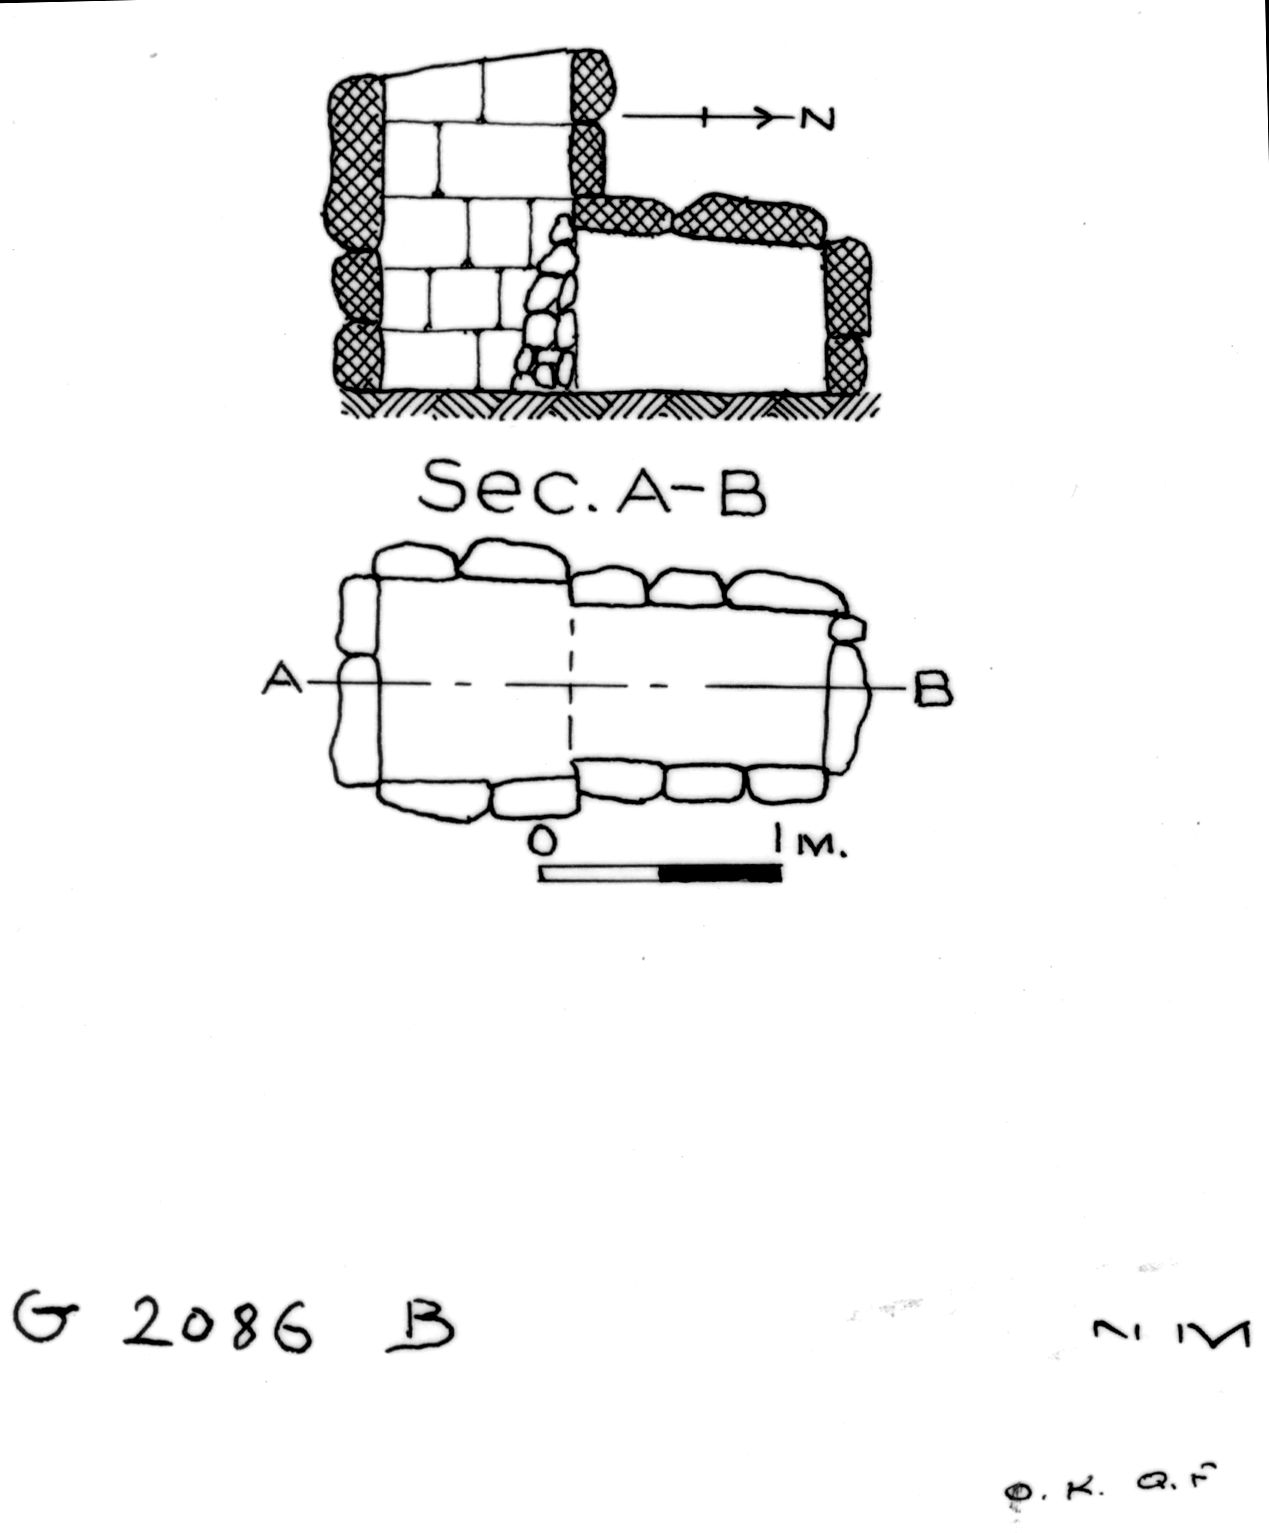 Maps and plans: G 2086, Shaft B